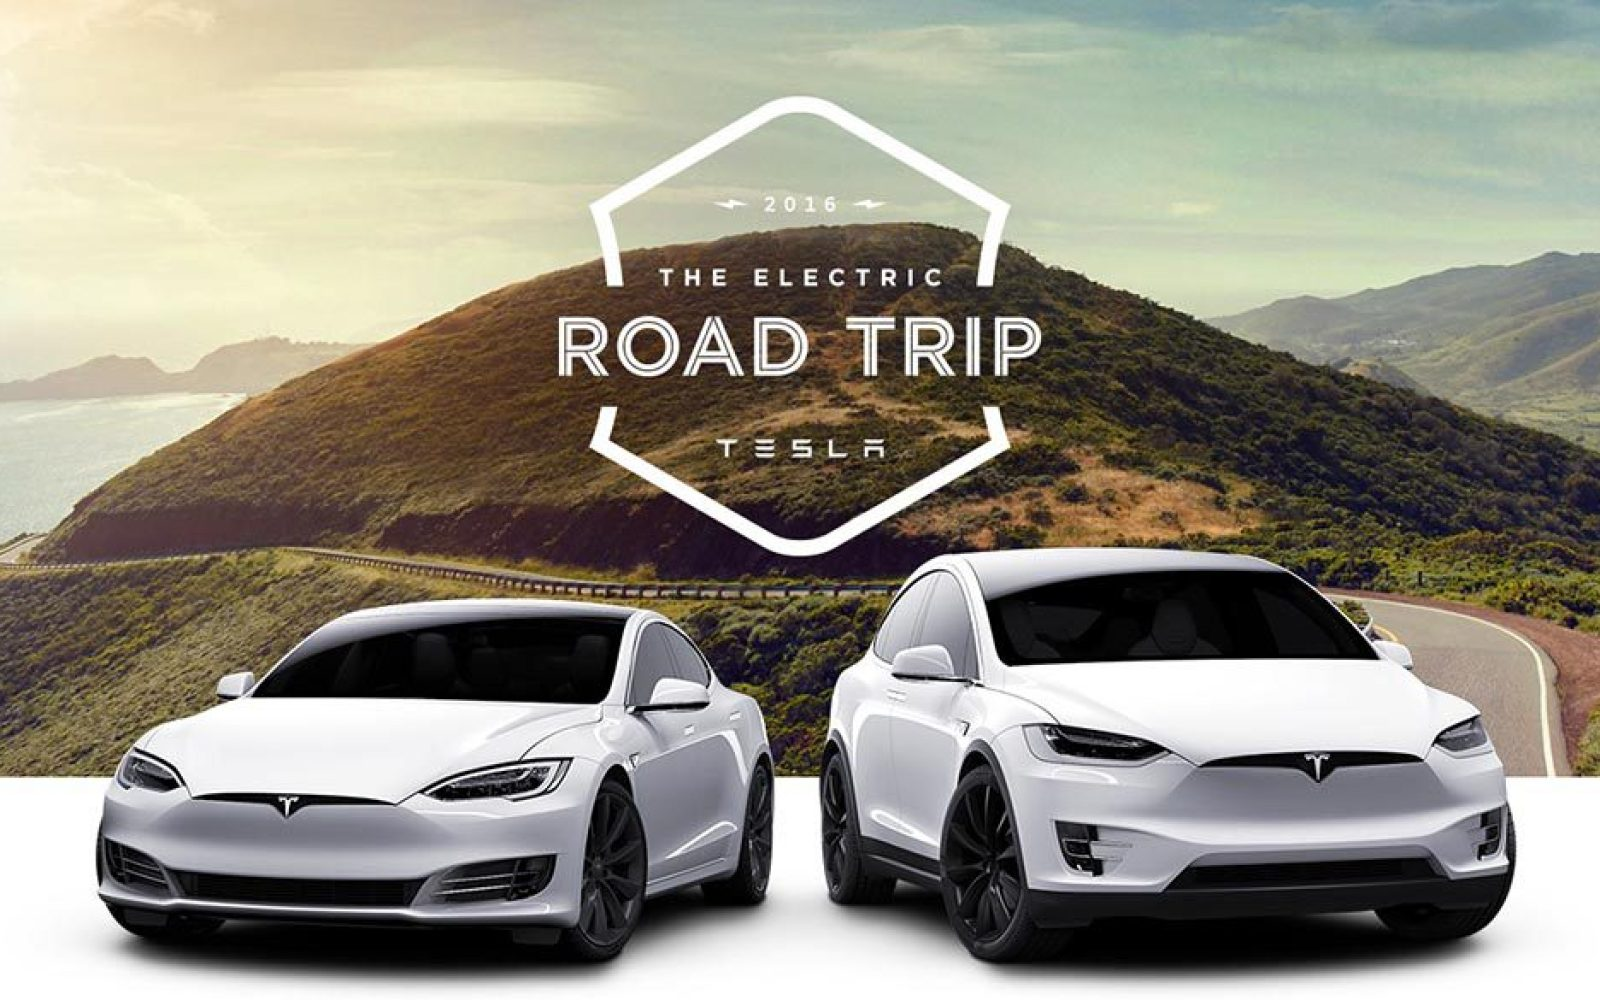 Tesla is launching an 'Electric Road Trip' tour for the summer to